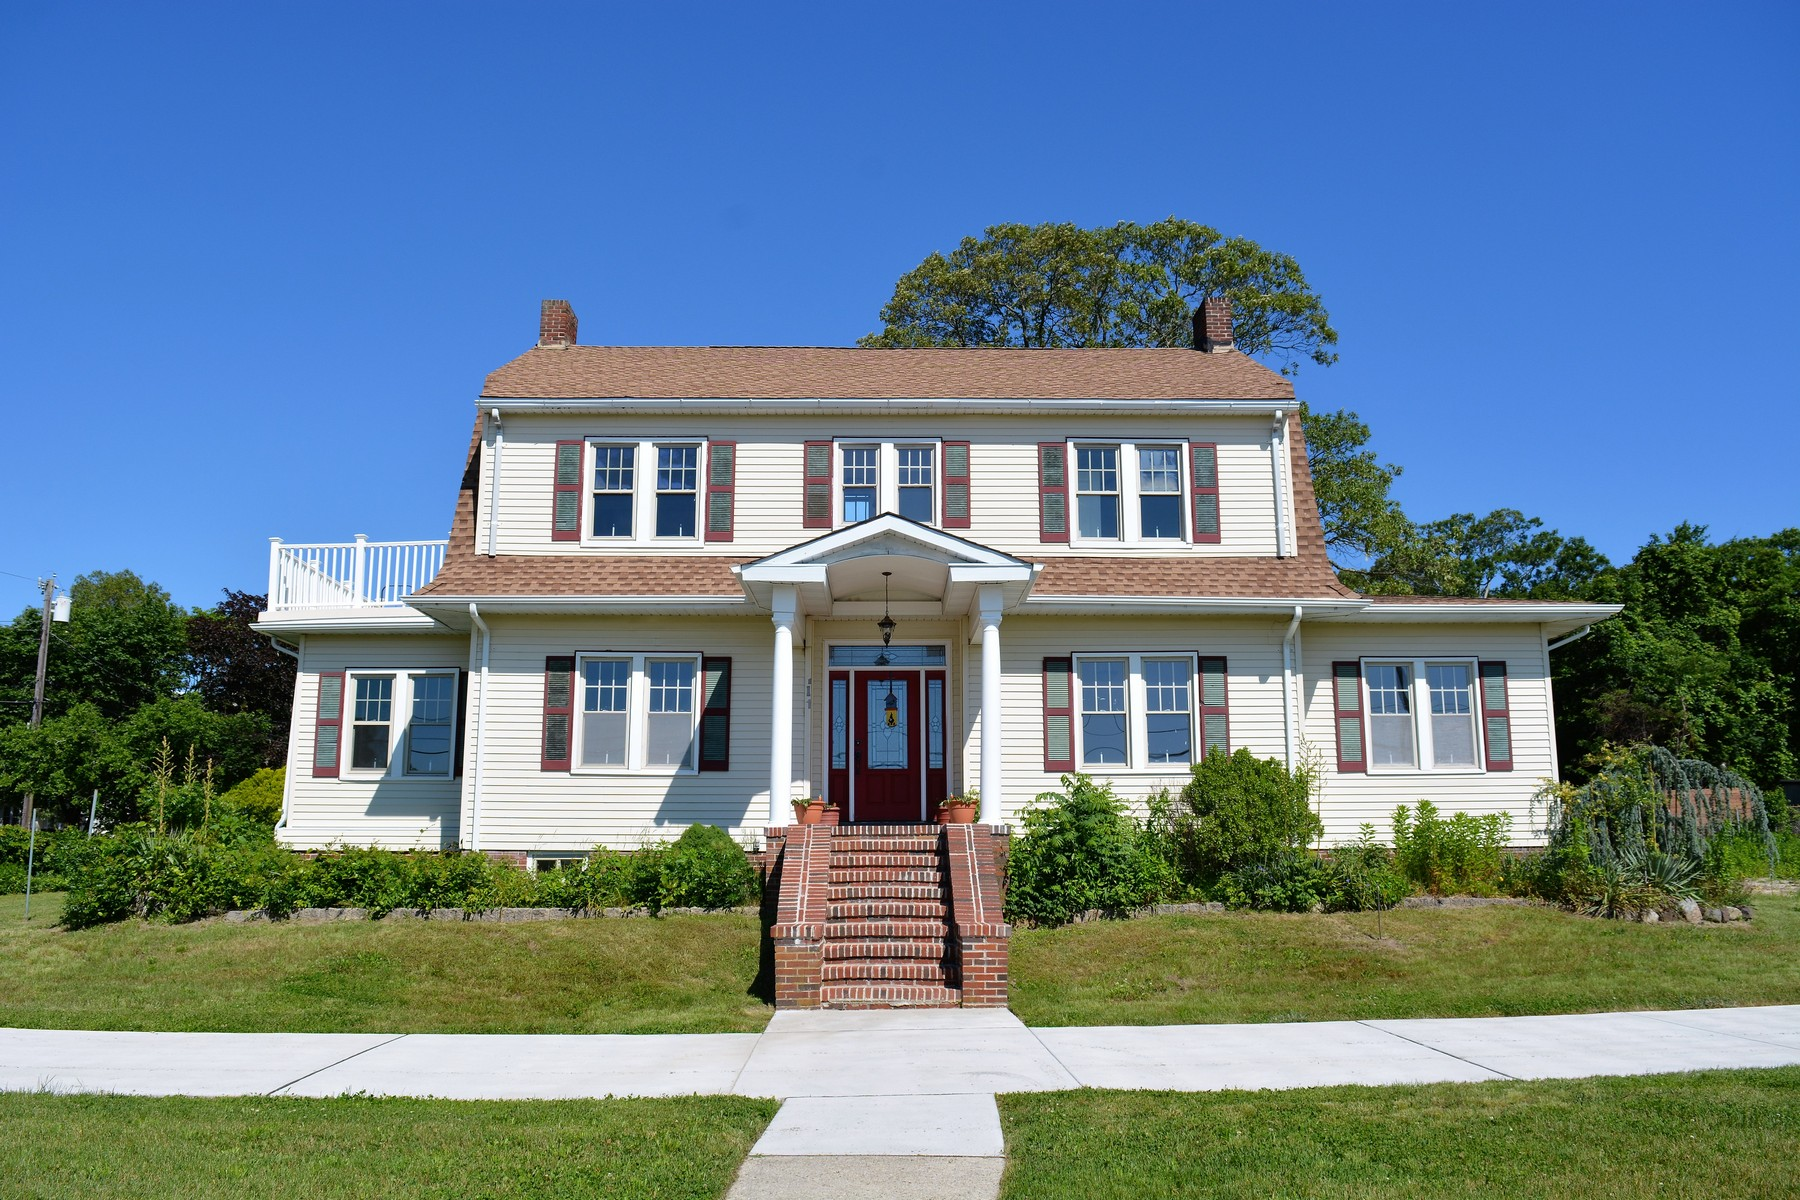 独户住宅 为 销售 在 Somers Point Single with Meadow Views 419 Bay Avenue Somers Point, 08244 美国